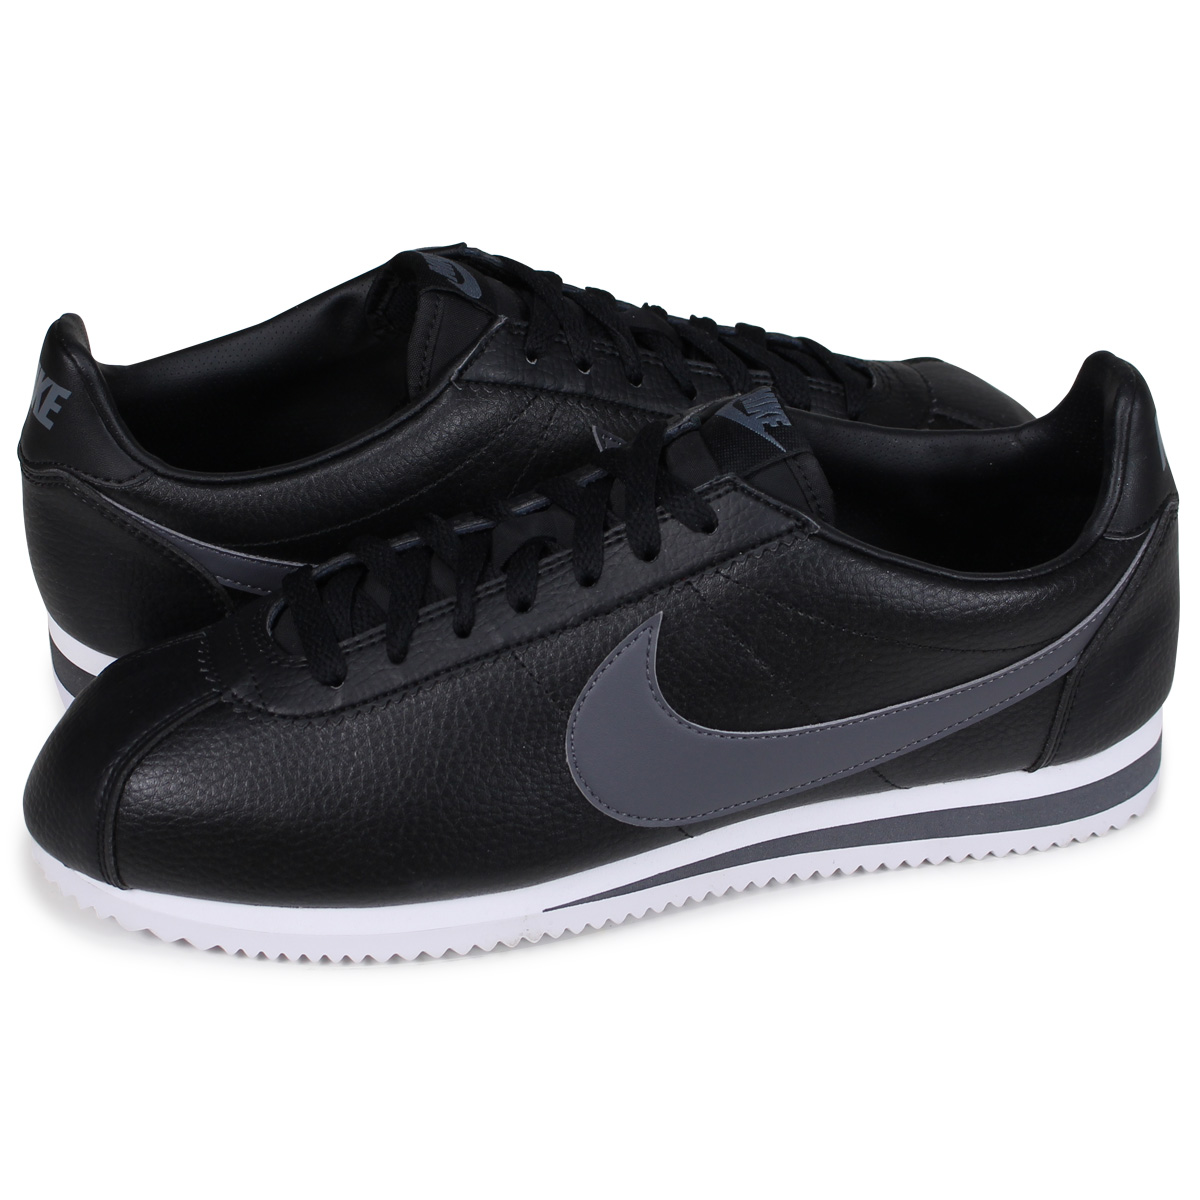 reputable site 23365 795c8 Nike NIKE コルテッツスニーカー CLASSIC CORTEZ LEATHER 749,571-011 men's black